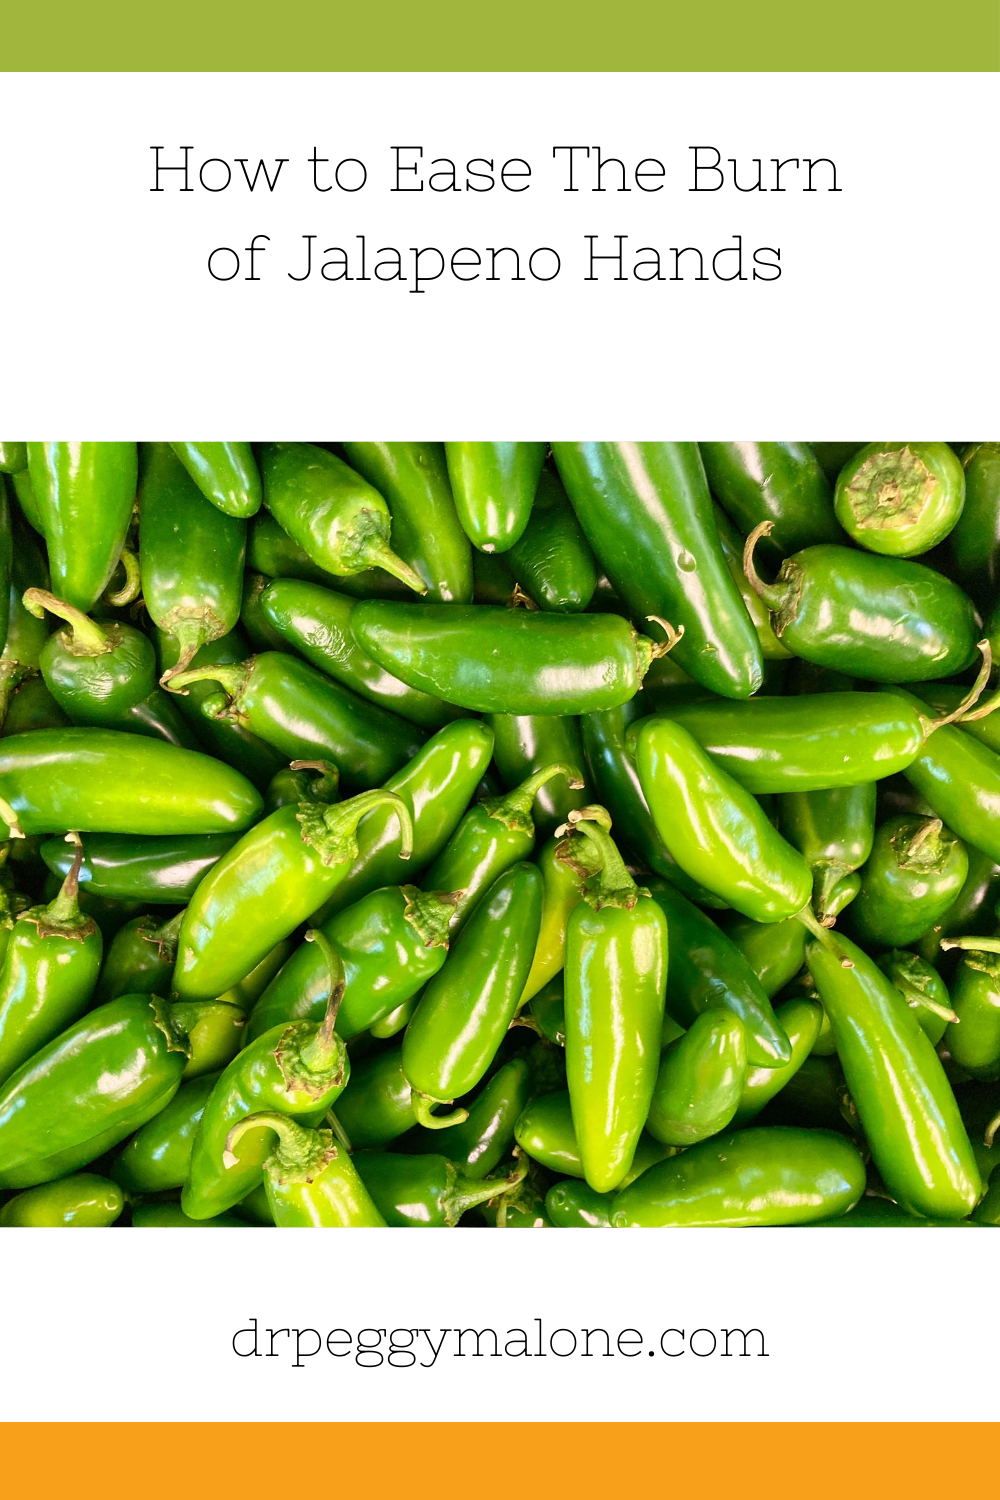 How to Ease The Burn of Jalopeno Hands